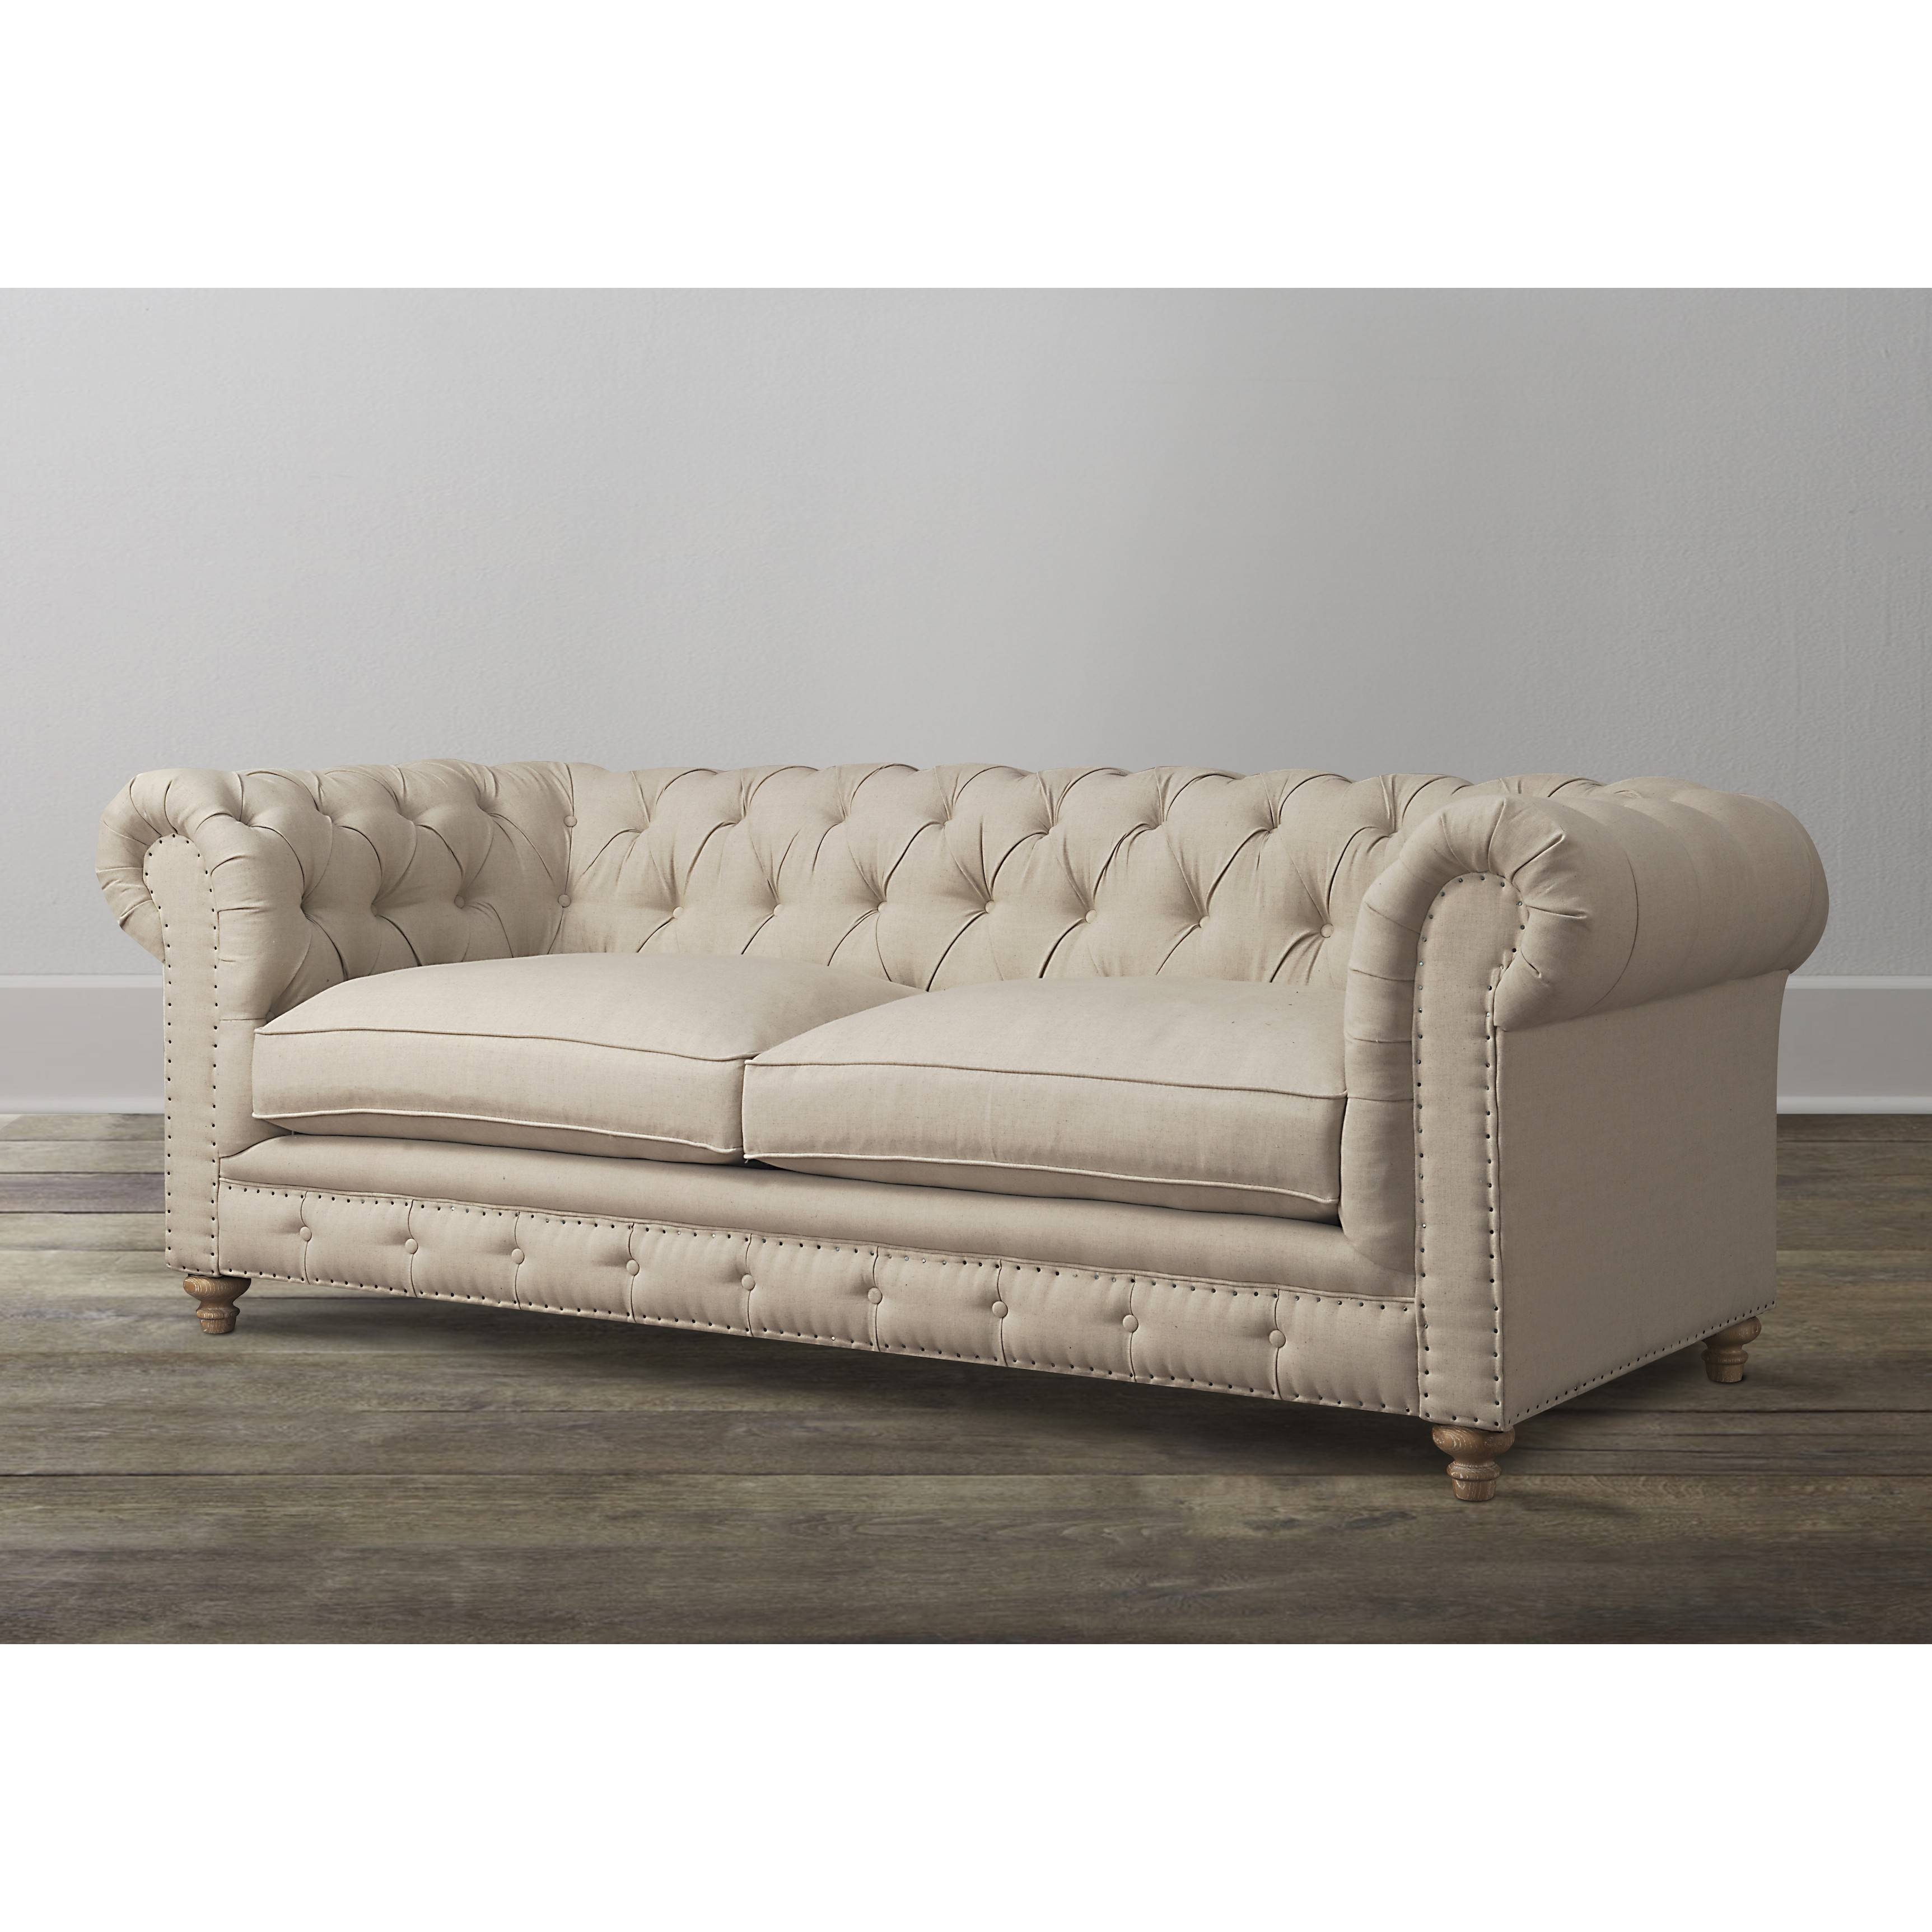 Furniture Living Room Beige Leather Tufted Chesterfield Sofa With in Shabby Chic Sectional Sofas Couches (Image 9 of 15)